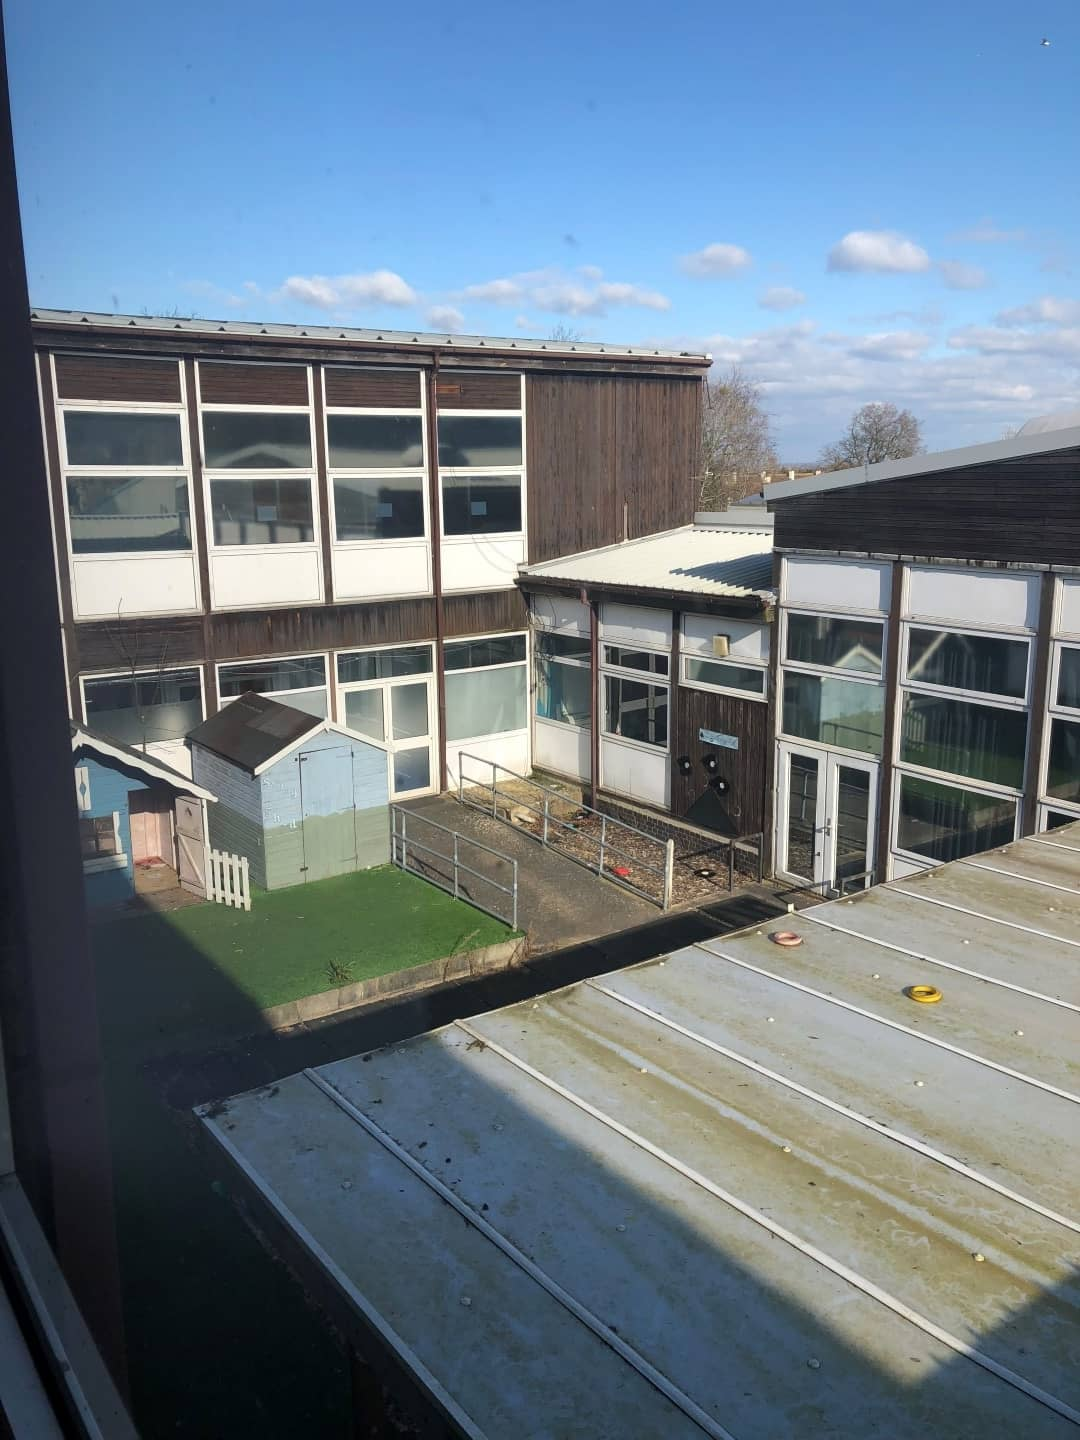 Outside view of the Moat School from the roof